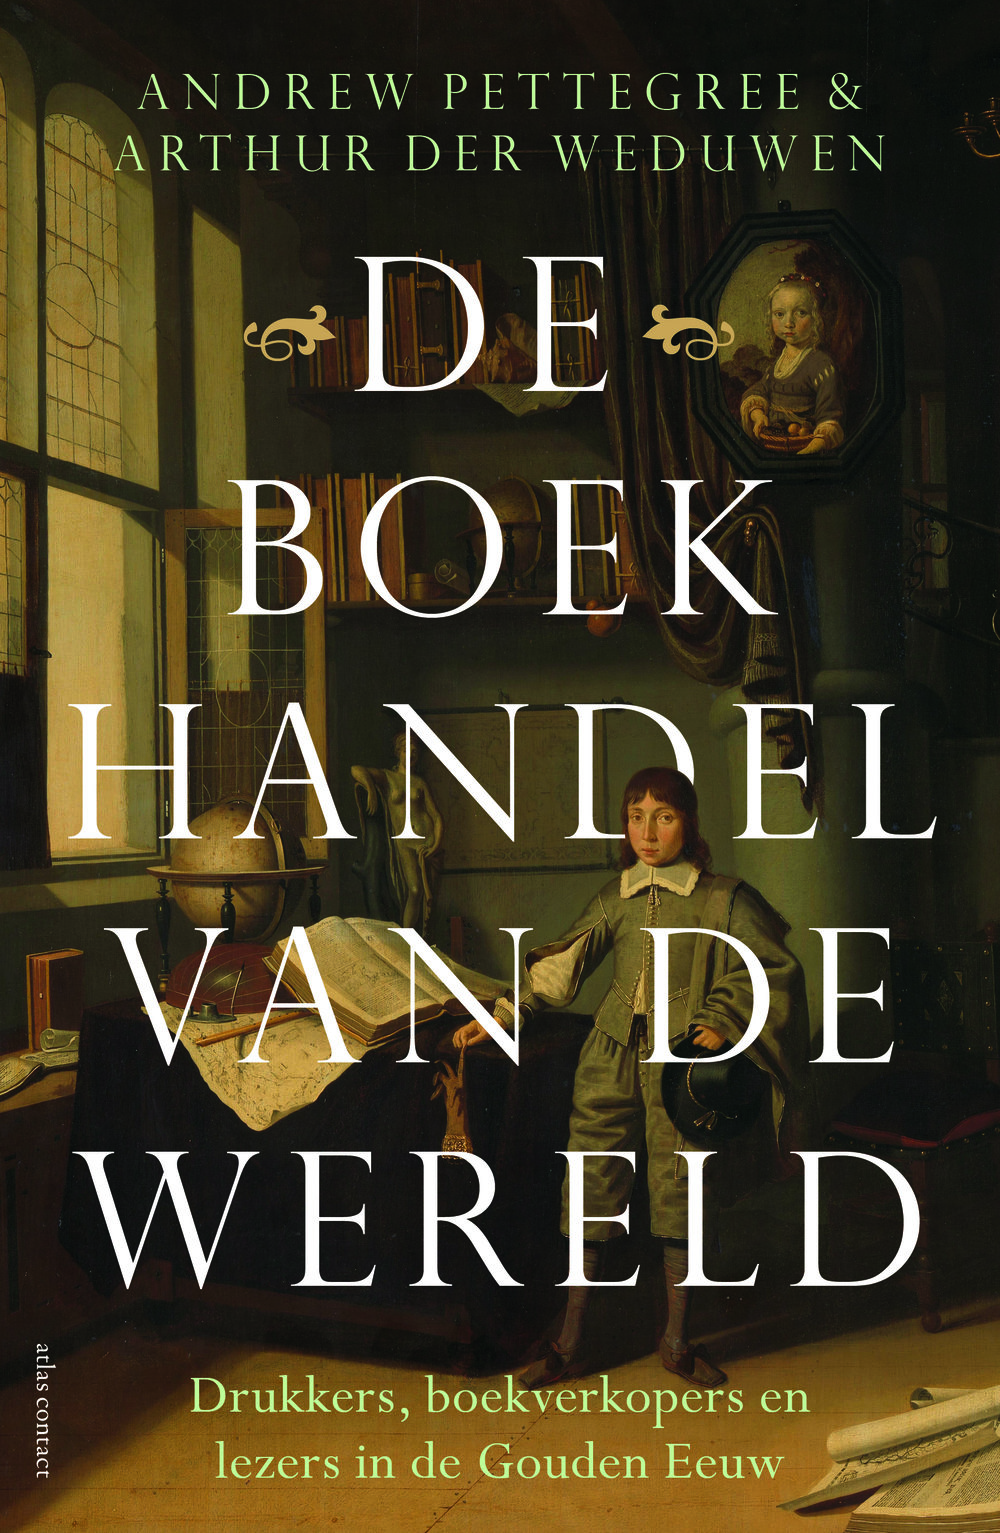 de boekhandel van de wereld - The Bookshop of the World is also to be published in Dutch by Atlas Contact (likewise responsible for the Dutch edition of Andrew Pettegree's Brand Luther).The translation was undertaken by the journalist and translator Frits van der Waa, who performed a phenomenal job.The launch tour for the Dutch edition of The Bookshop will take place in various locations in the Netherlands at the end of March 2019. We will present the book and their research on the following days:Monday 18: Publisher's launch at Spui 25, Amsterdam, 20:00-21:00Tuesday 19 March: Golden Age Seminar, University of Amsterdam, 15:30-17:00Friday 22: University library of Groningen, 13:00-16:30Saturday 23: Tresoar, Leeuwarden, 14:00-16:00Monday 25: de Bibliotheek, Deventer, 19:30-21:00Tuesday 26: University of Utrecht, 17:30-18:30Wednesday 27: University of Leiden, 17:00-19:00Thursday 28: Koninklijke Bibliotheek, The Hague, 13:00-17:00